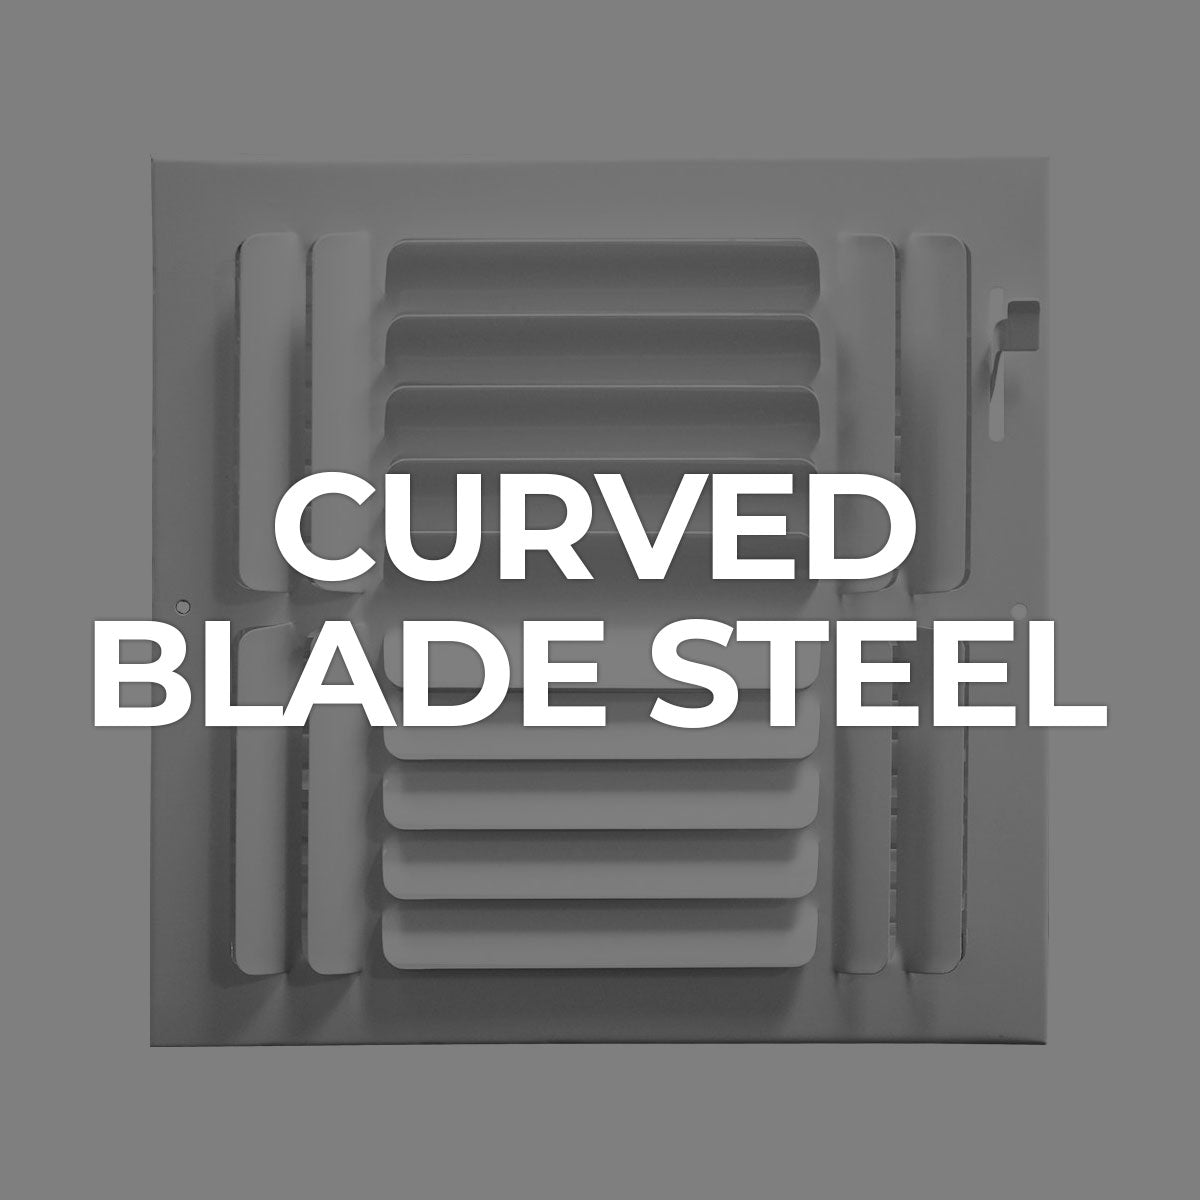 Supply / Curved Blade Steel